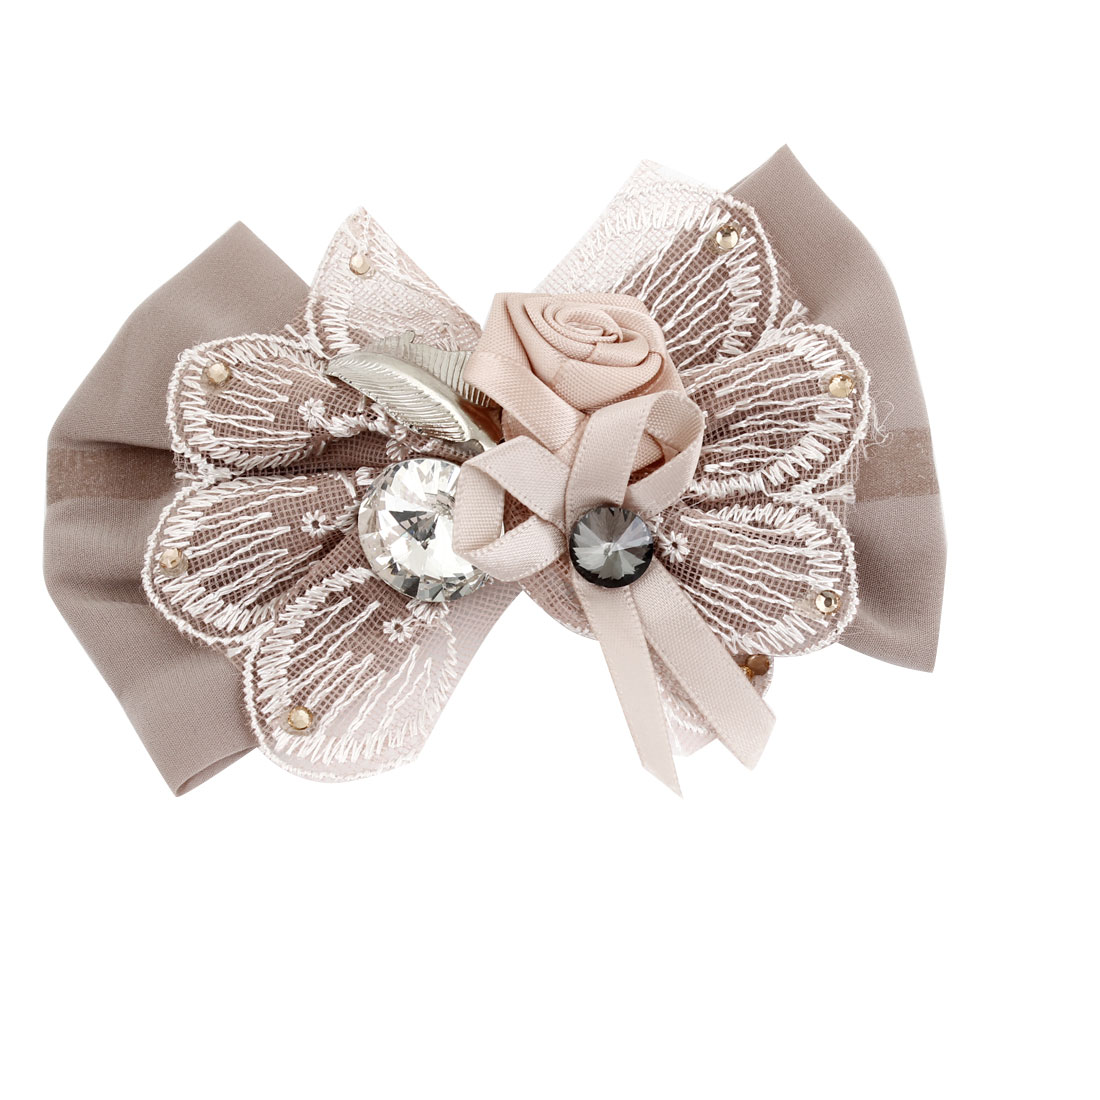 Rose Brown Flowers Rhinestone Accent Bowknot Alligator Hair Clip for Lady